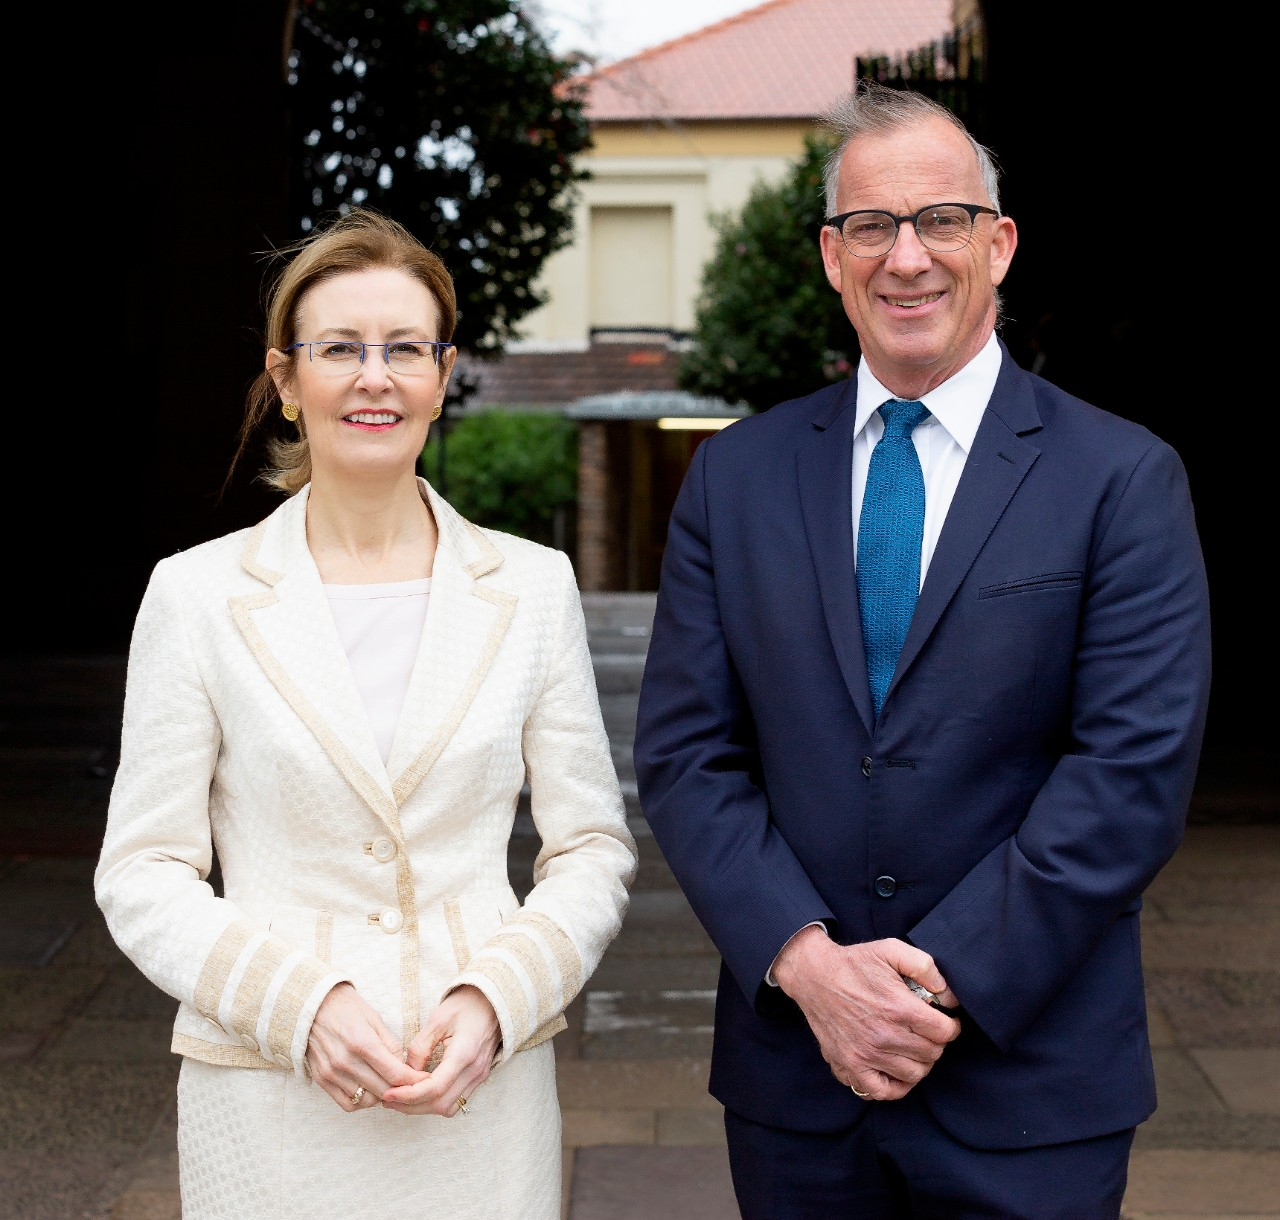 NSW Heritage Minister Gabrielle Upton with Vice-Chancellor and Principal Dr Michael Spence